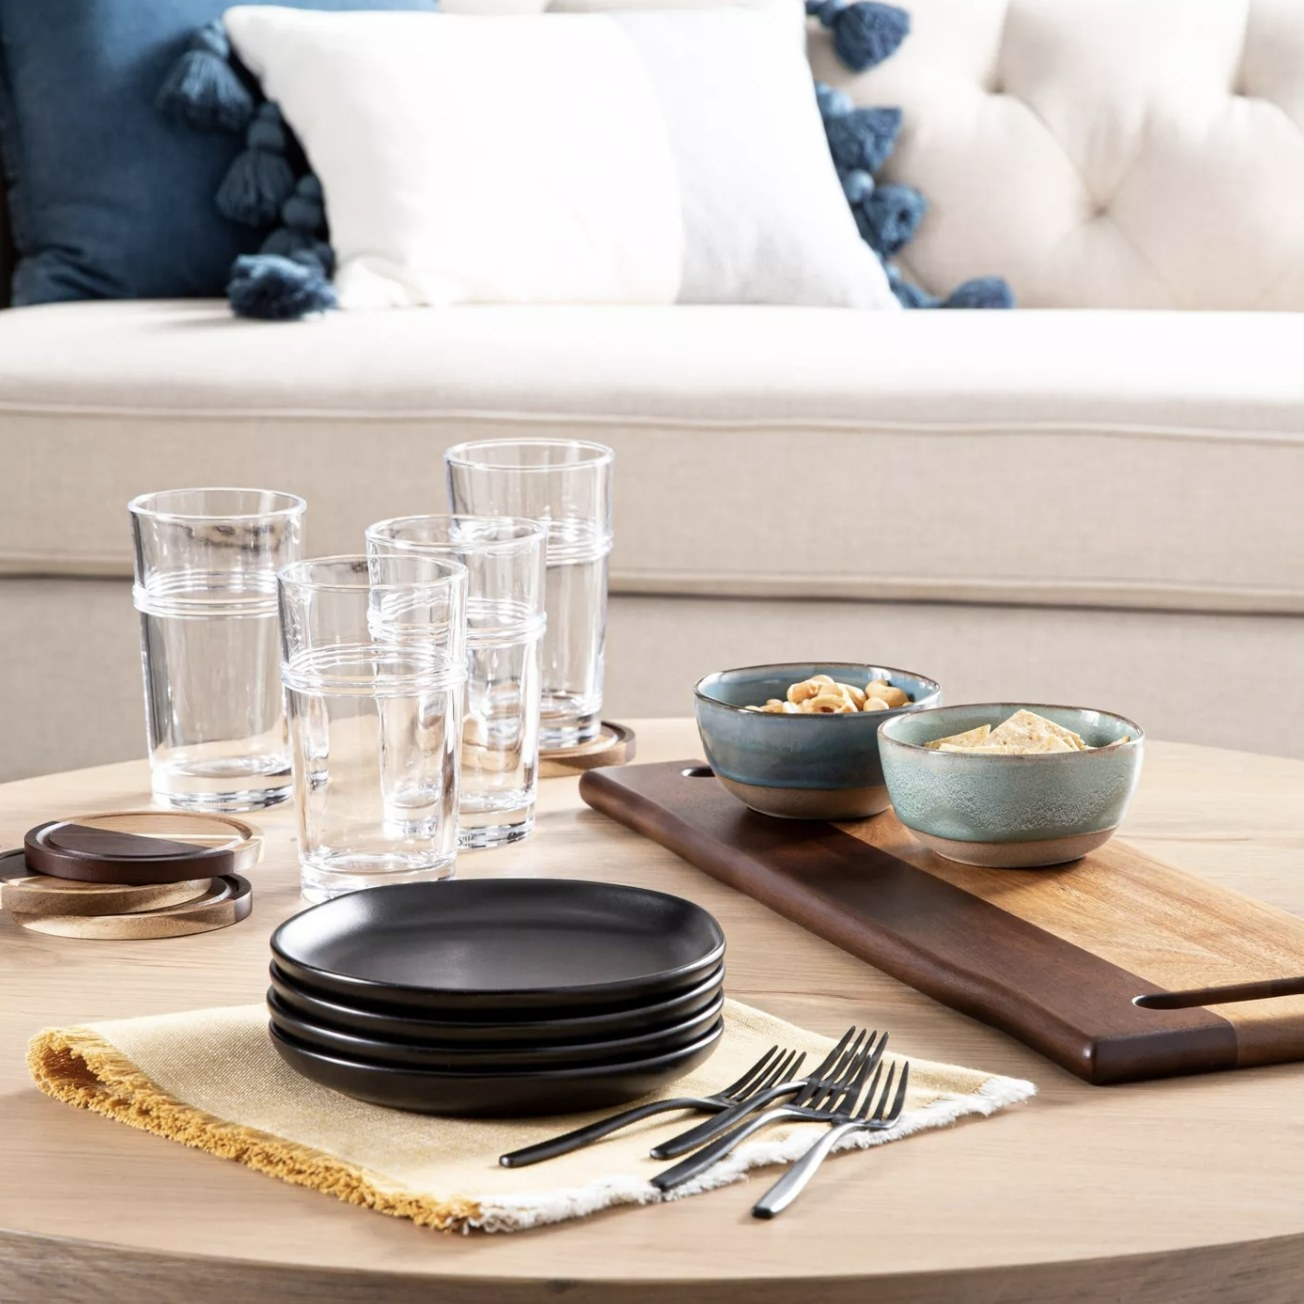 The wood coasters on a coffee table